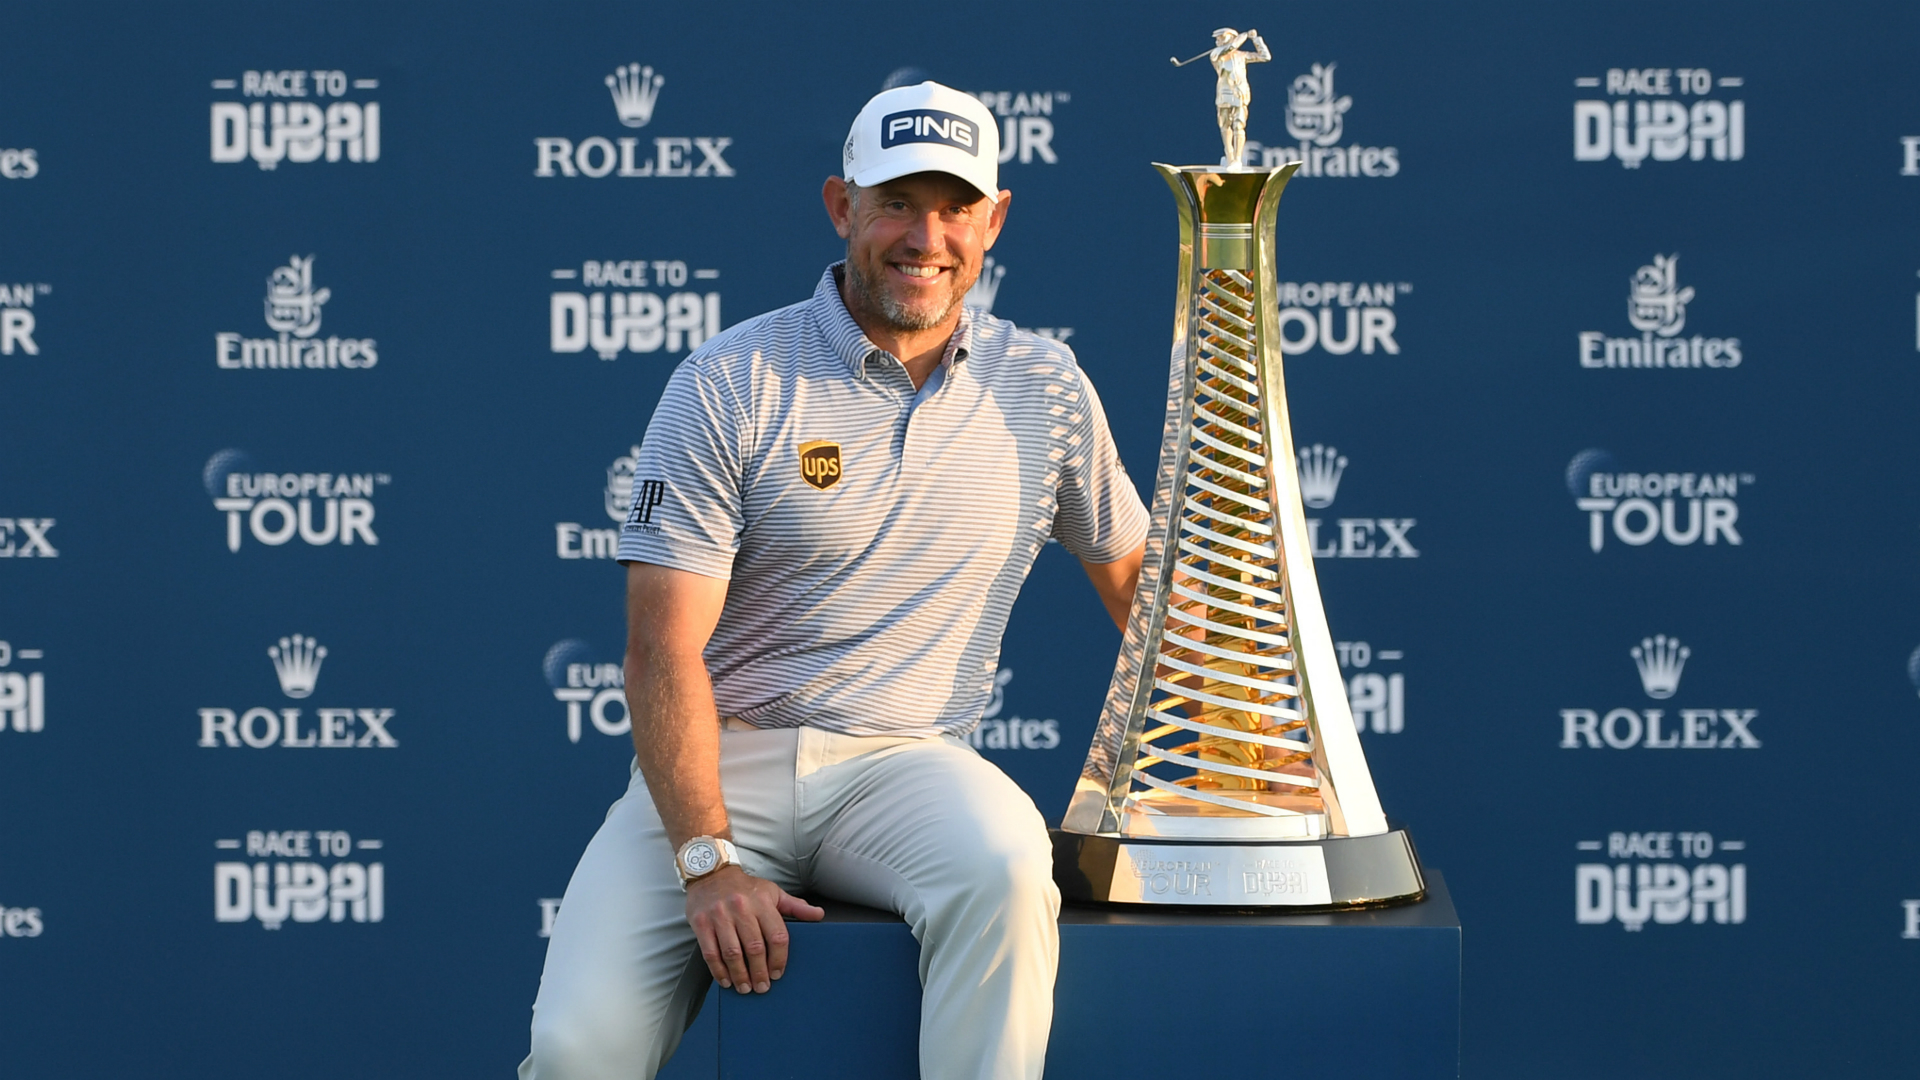 Lee Westwood targets Ryder Cup after Race to Dubai glory